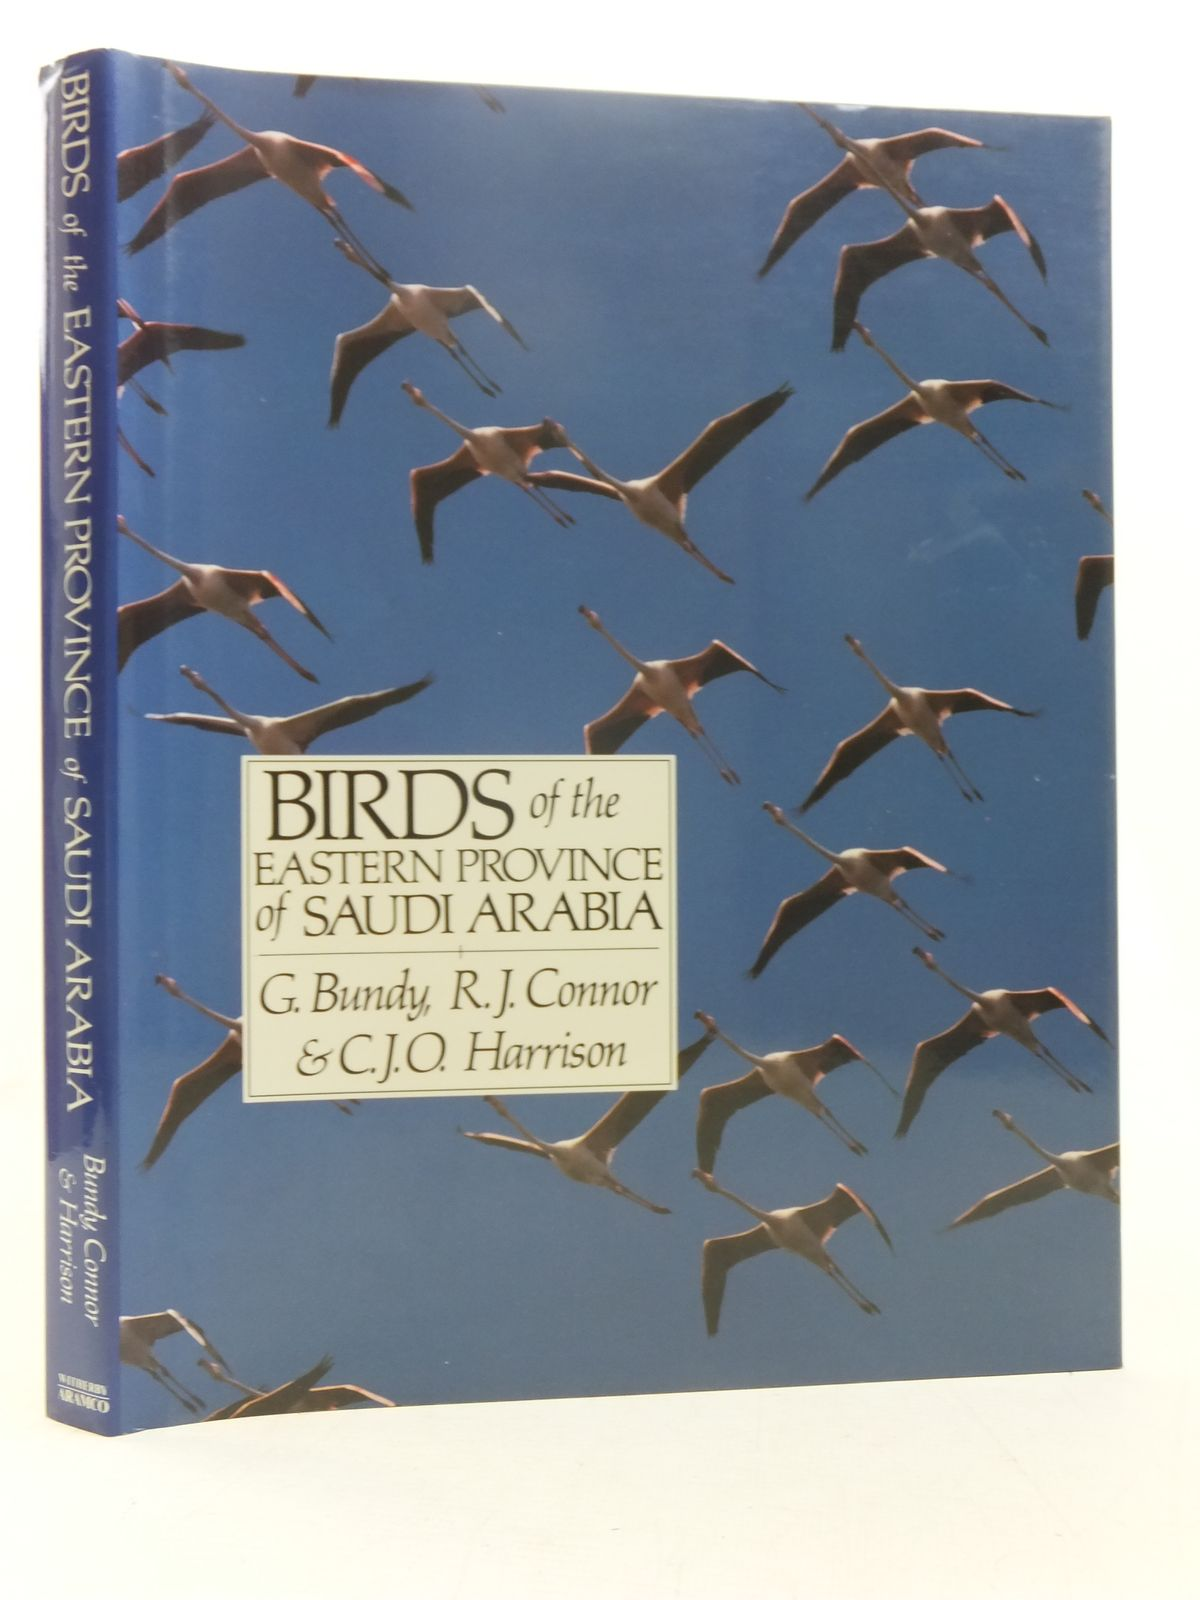 Photo of BIRDS OF THE EASTERN PROVINCE OF SAUDI ARABIA written by Bundy, G.<br />Conner, R.J.<br />Harrison, C.J.O. published by H.F. & G. Witherby Ltd. (STOCK CODE: 1607373)  for sale by Stella & Rose's Books